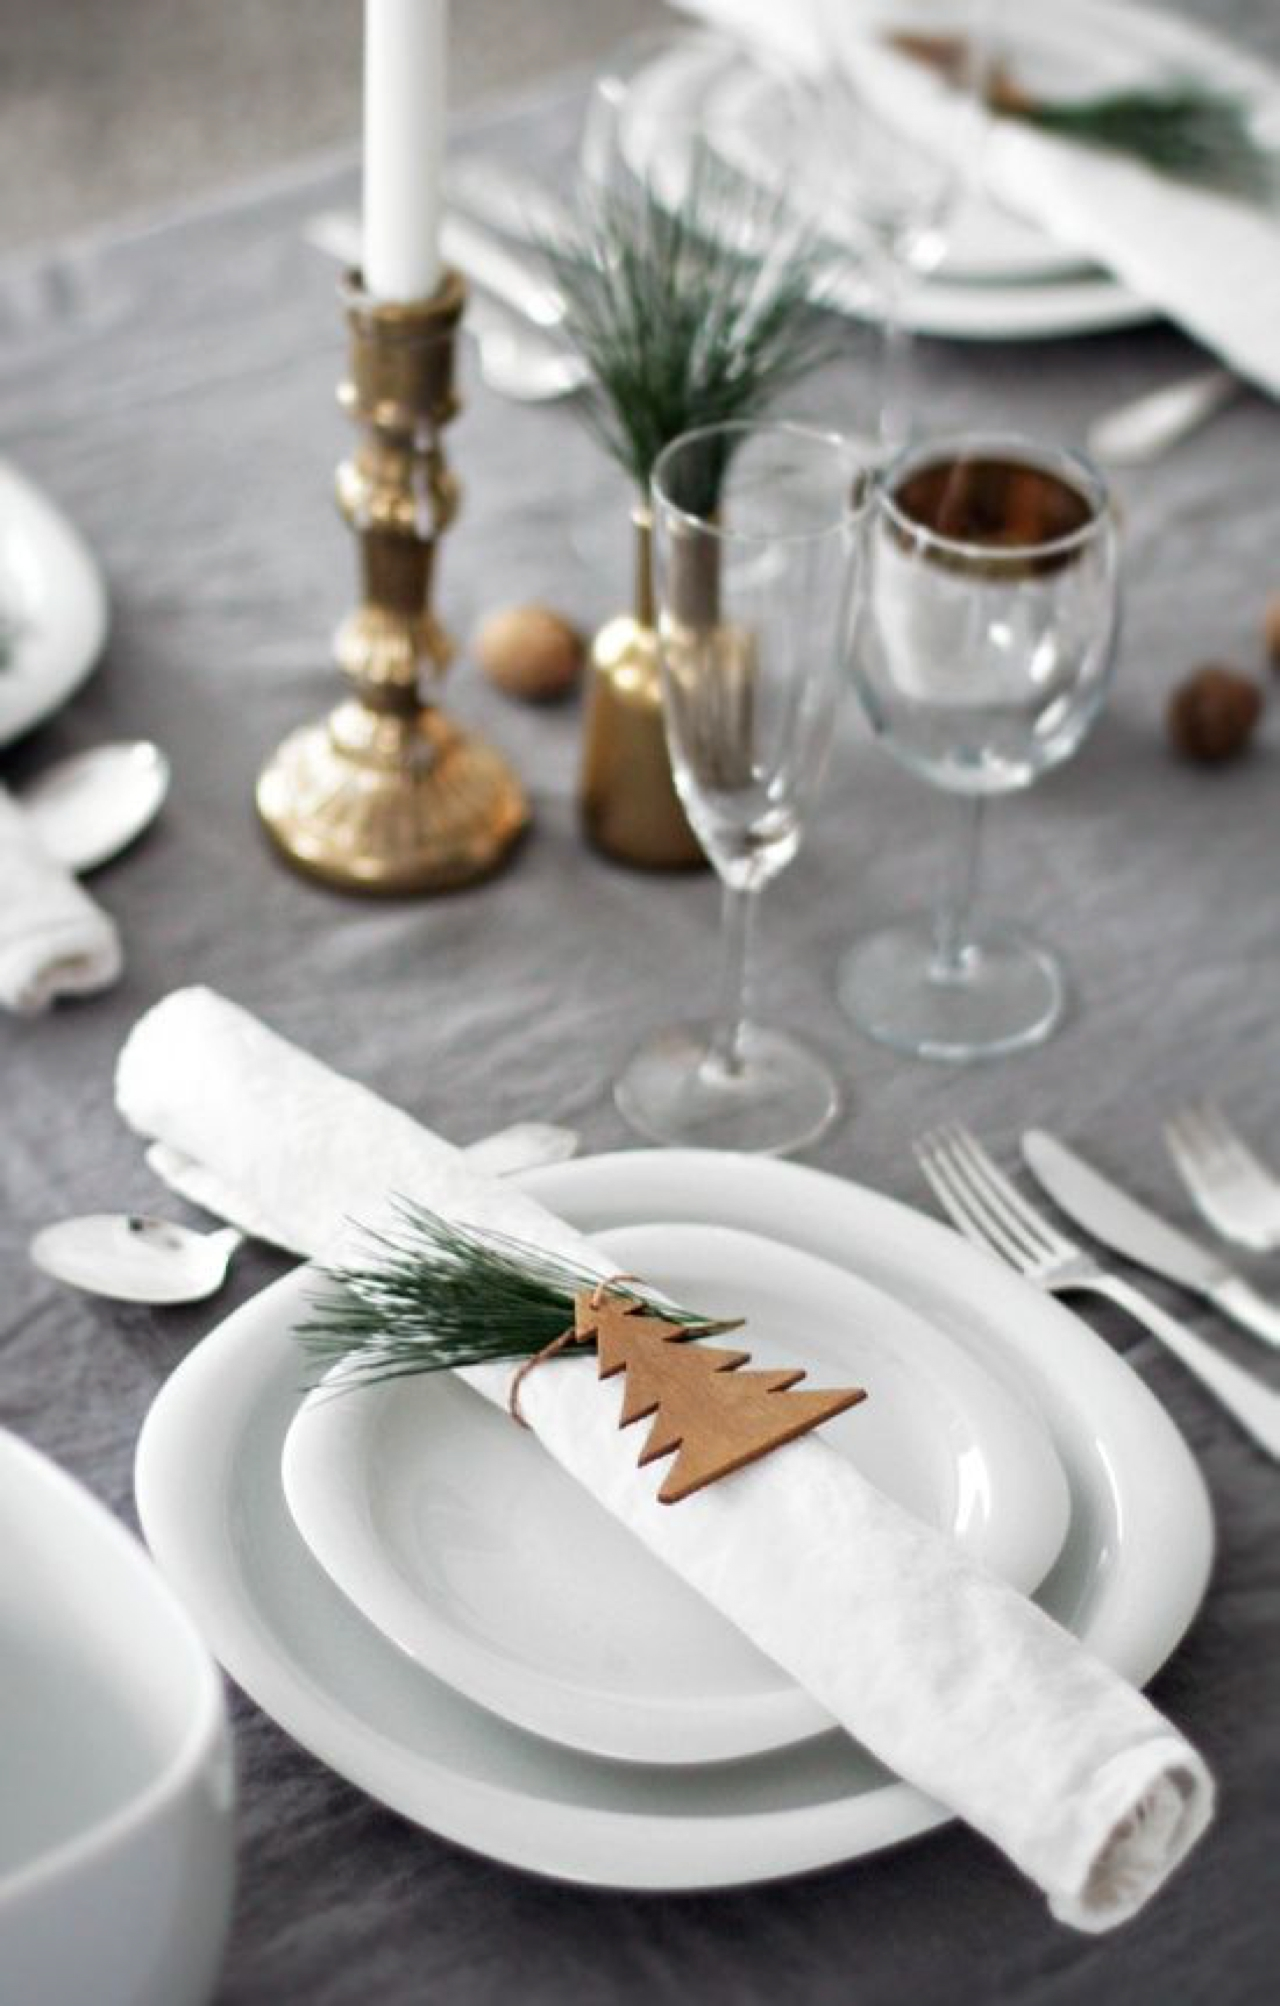 10 Gorgeous Table Settings for Christmas that you Will Love table settings for christmas 8 Gorgeous Table Settings for Christmas that you Will Love 10 Gorgeous Table Settings for Christmas that you Will Love3